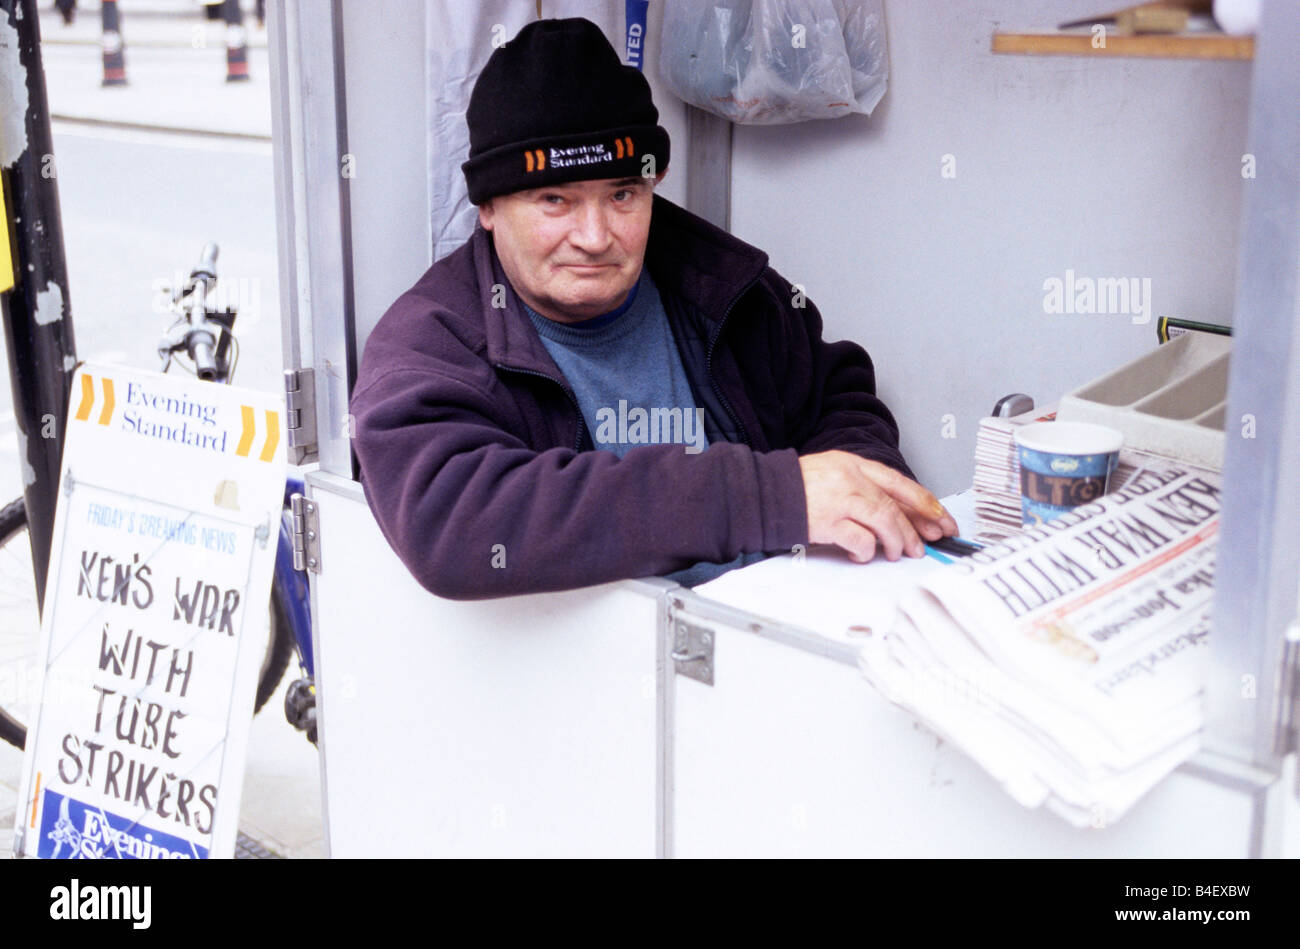 A man selling newspapers in London. Stock Photo